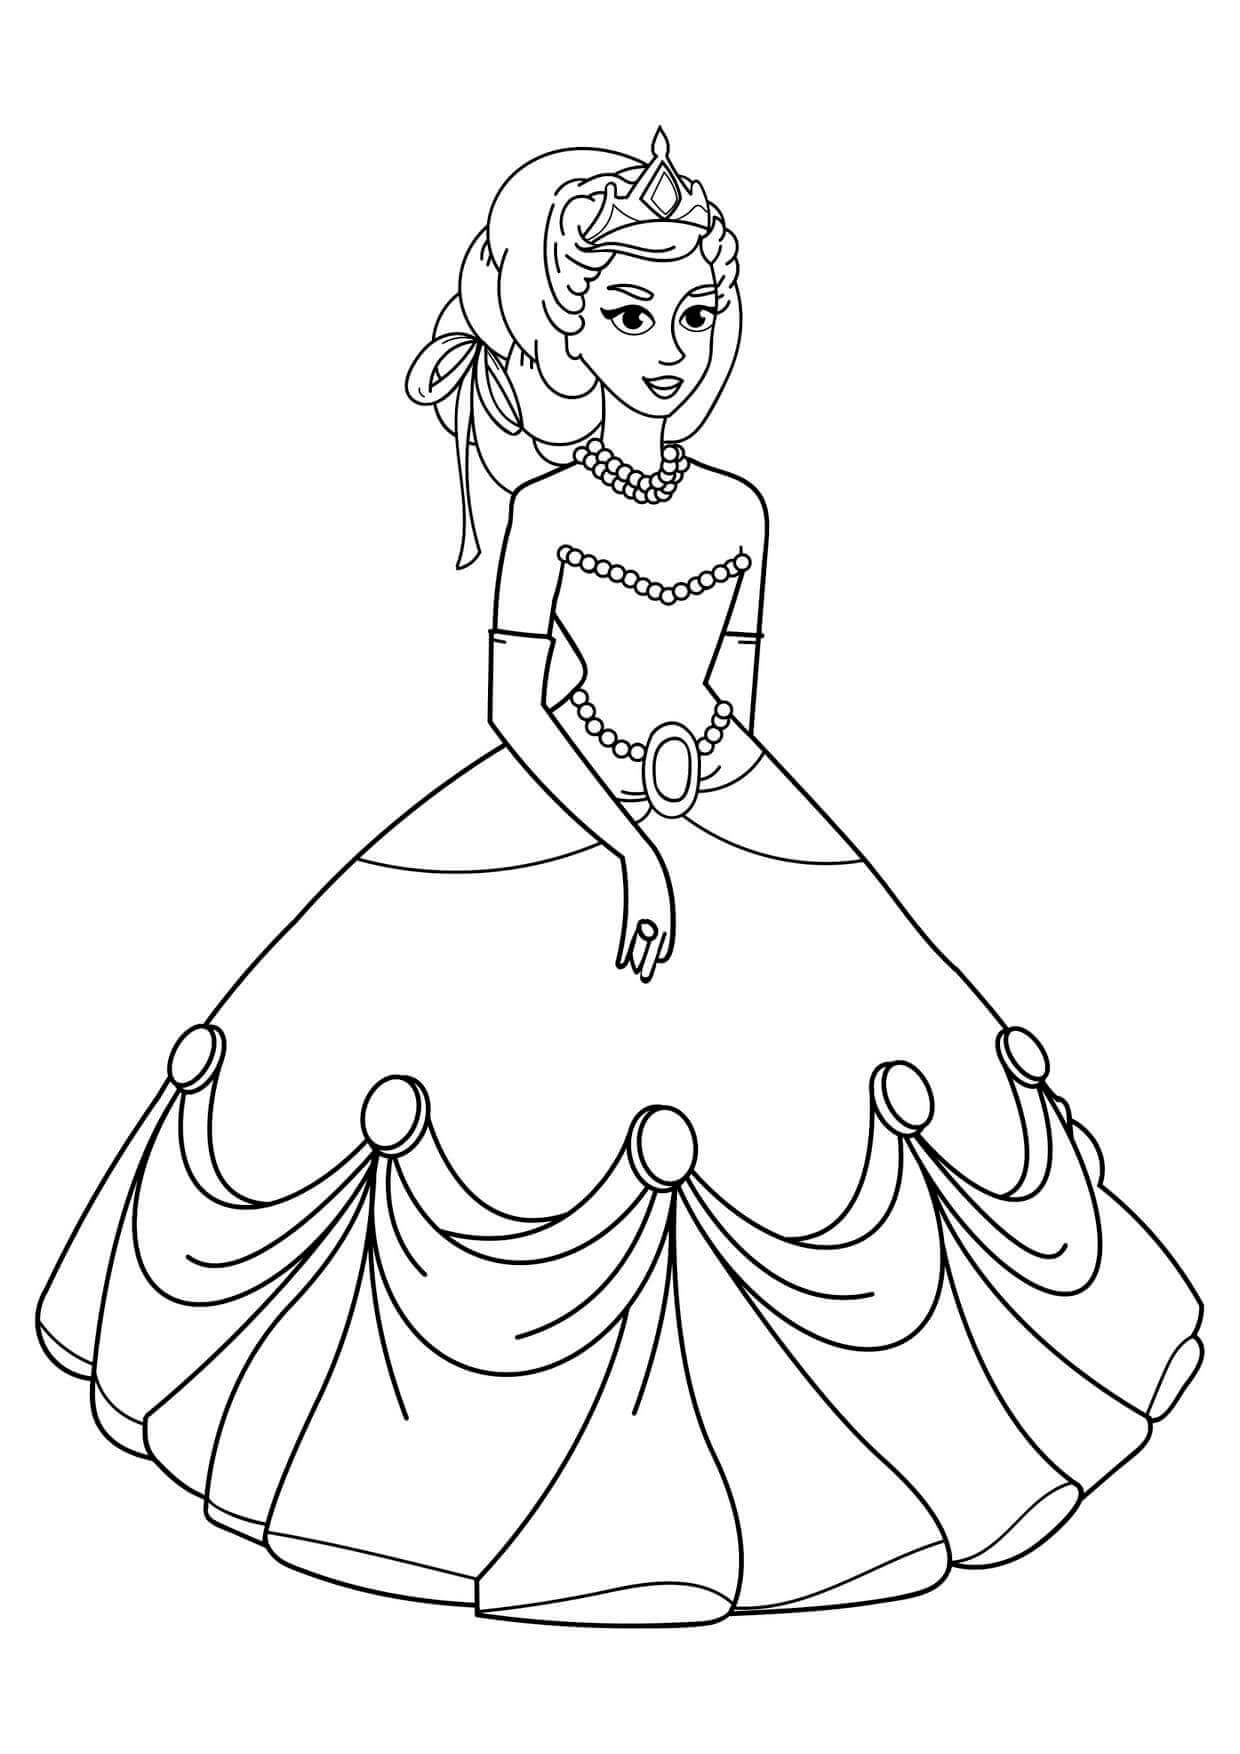 free girl coloring pages to print printable coloring pages for girls ideas whitesbelfast coloring print to free girl pages